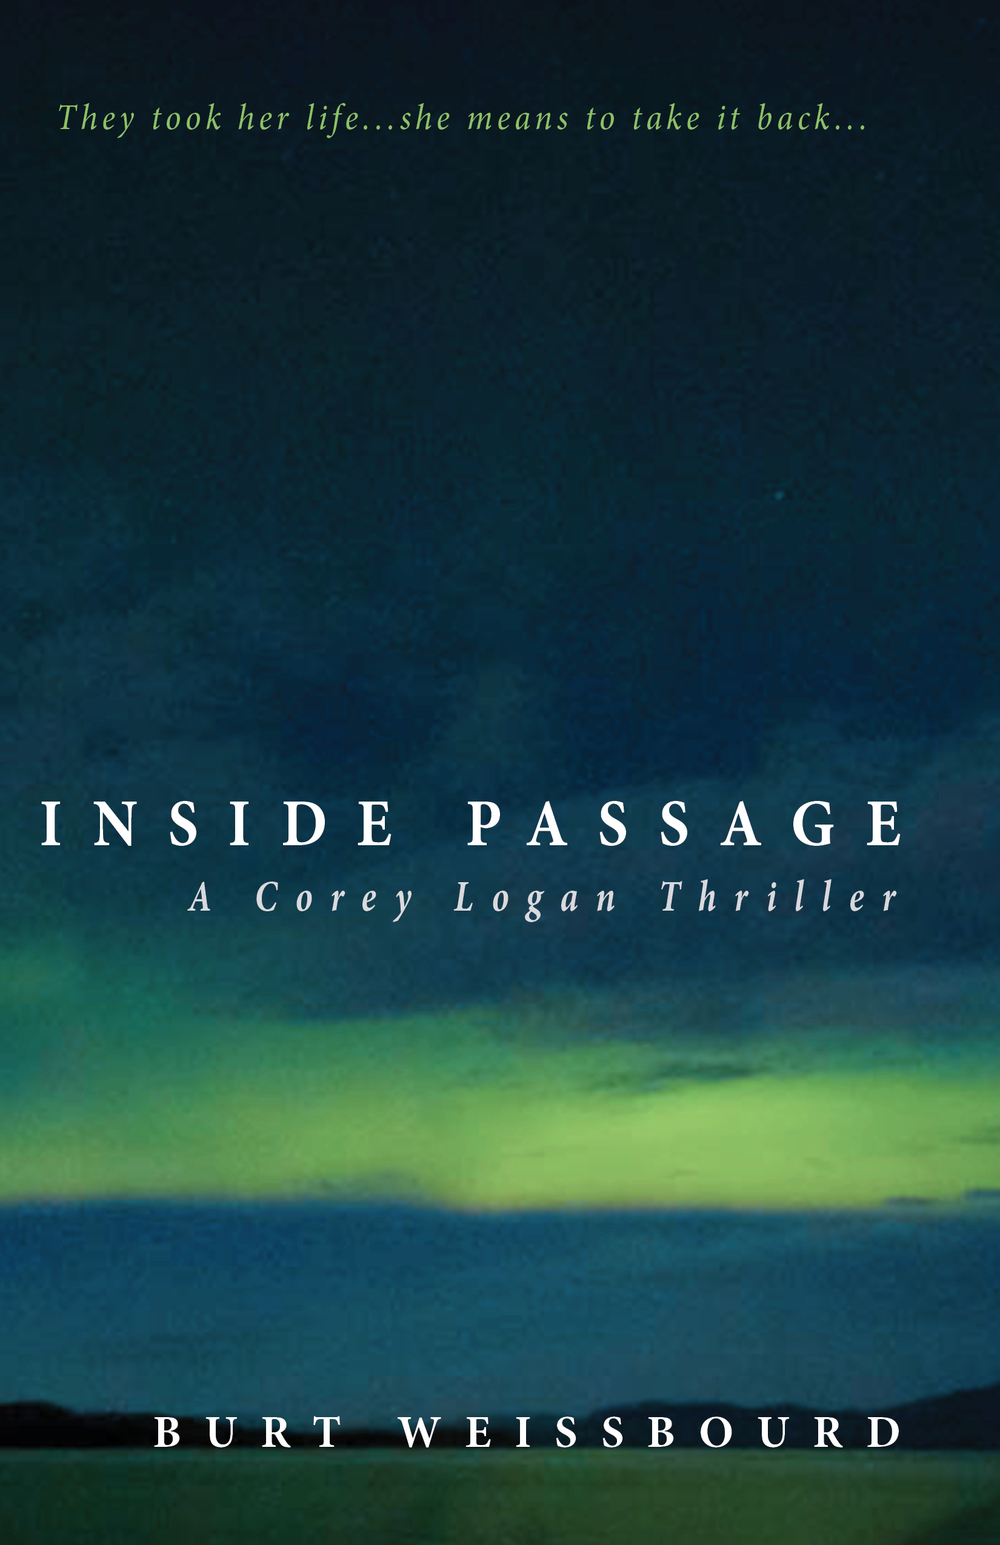 Inside Passage is the first in Weissbourd's haunting, heart-stirring Corey Logan trilogy.